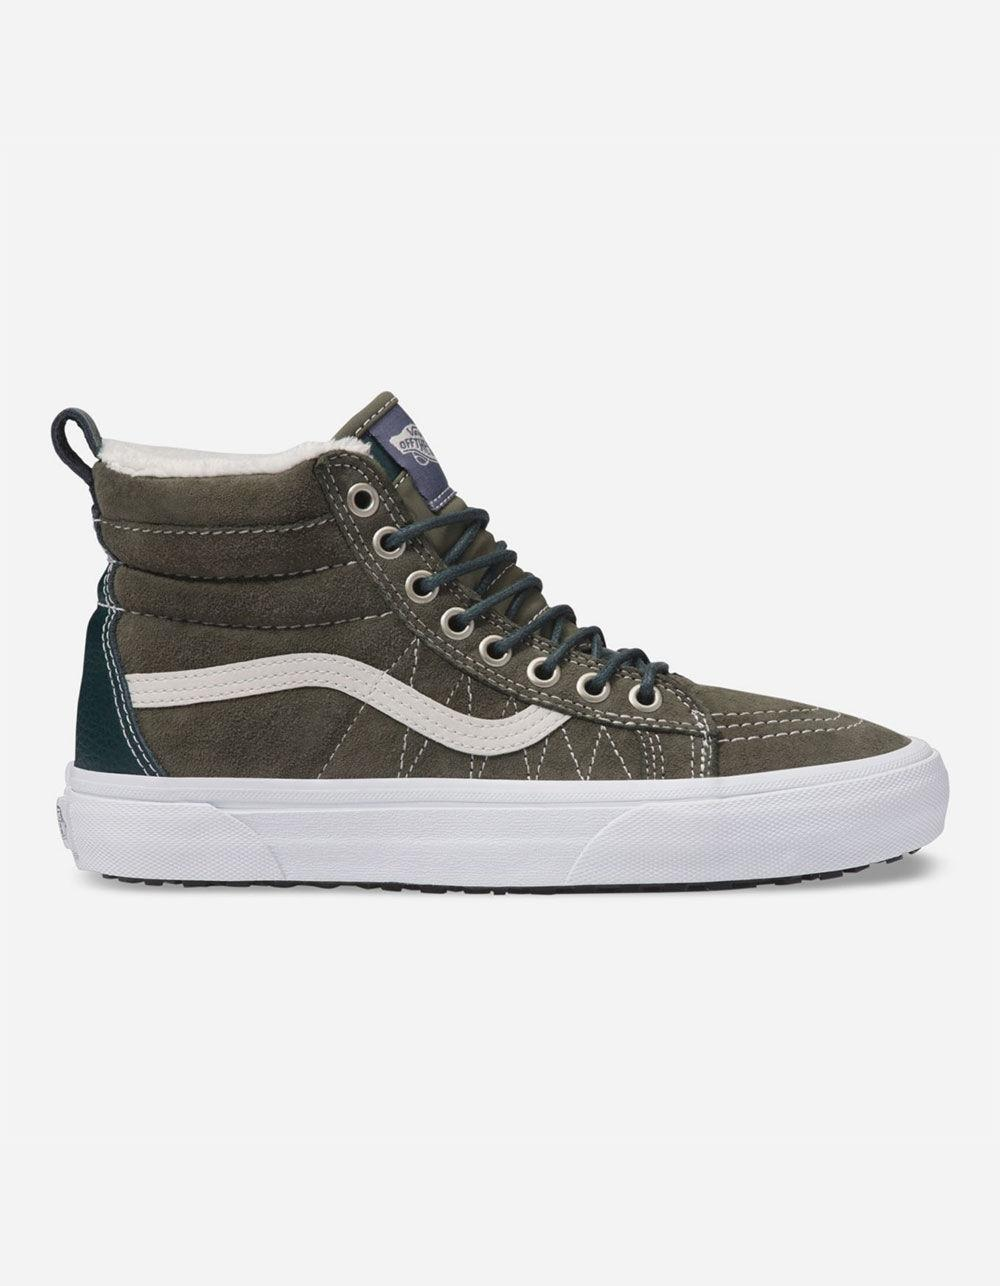 2ee360cc61 Lyst - Vans Sk8-hi Mte Dusty Olive Womens Shoes in Green